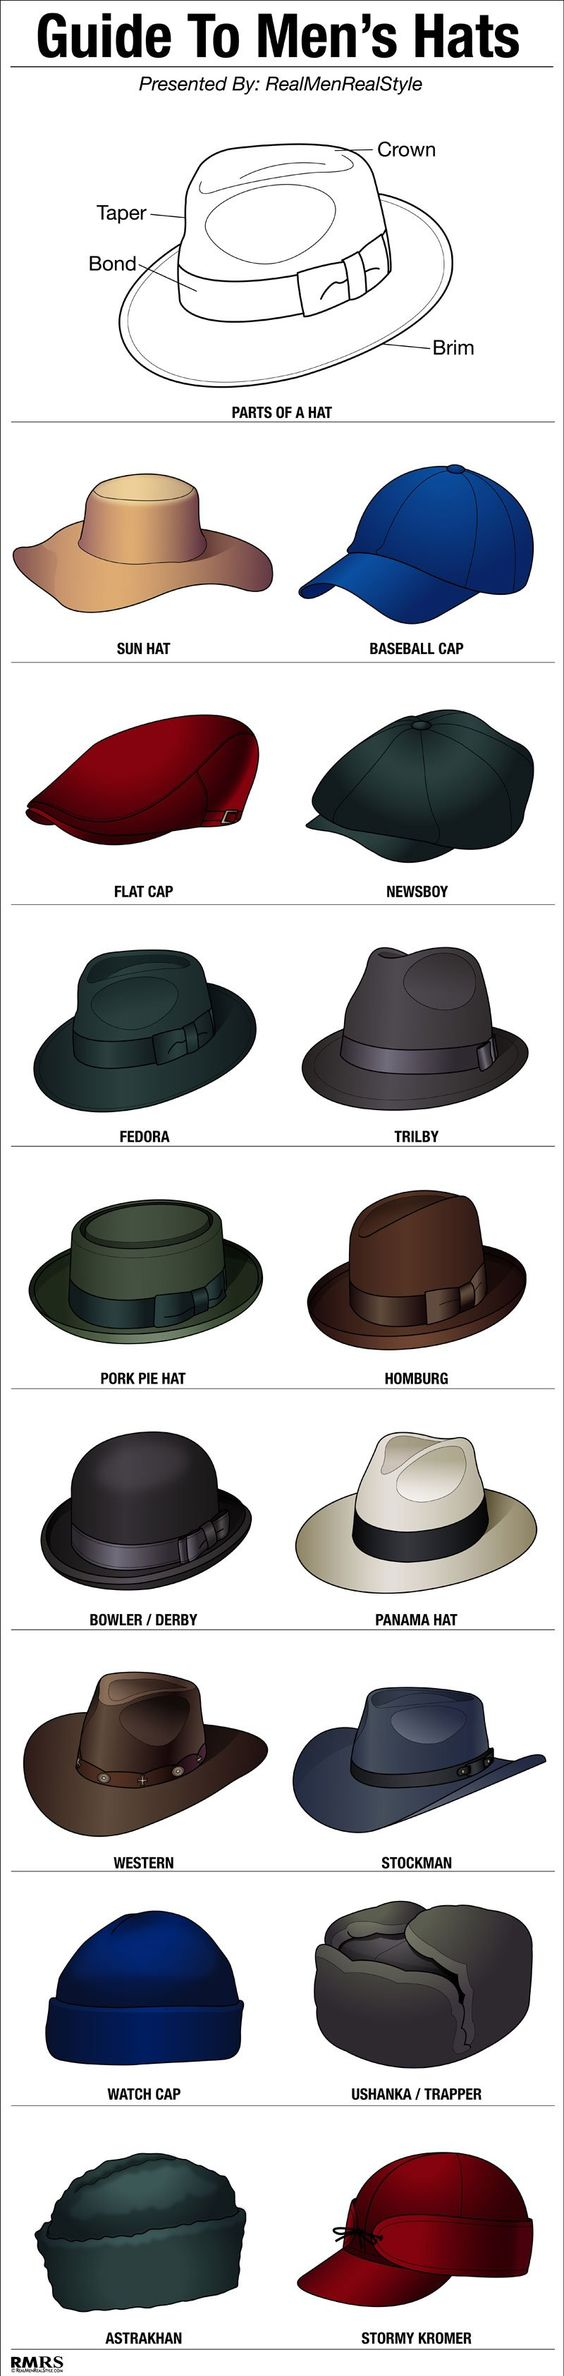 A great guide for Men's hats by http://www.businessinsider.com/a-guide-to-stylish-mens-hats-2014-1. You can find these styles at www.broner.com